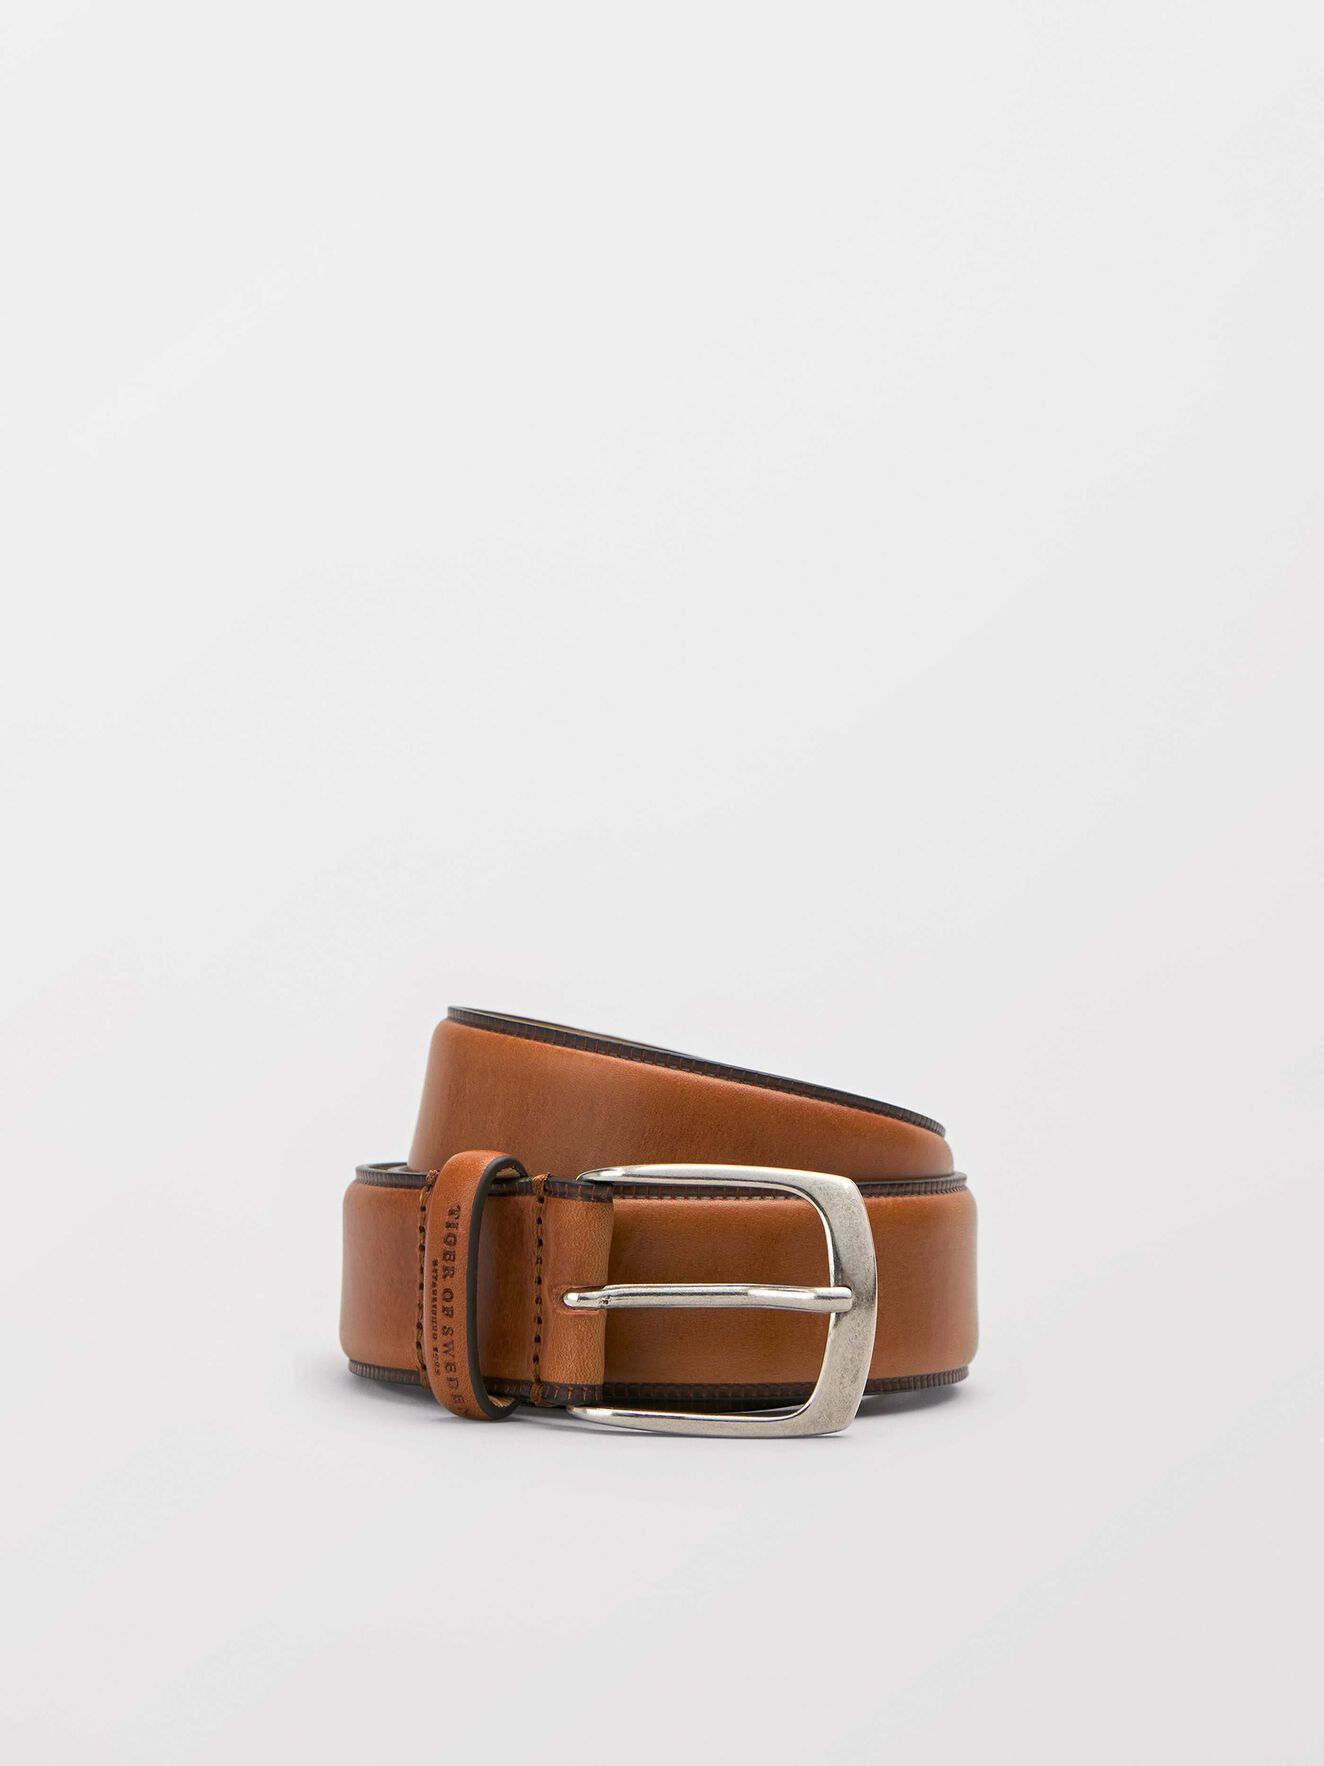 Blommer belt in Light Brown from Tiger of Sweden